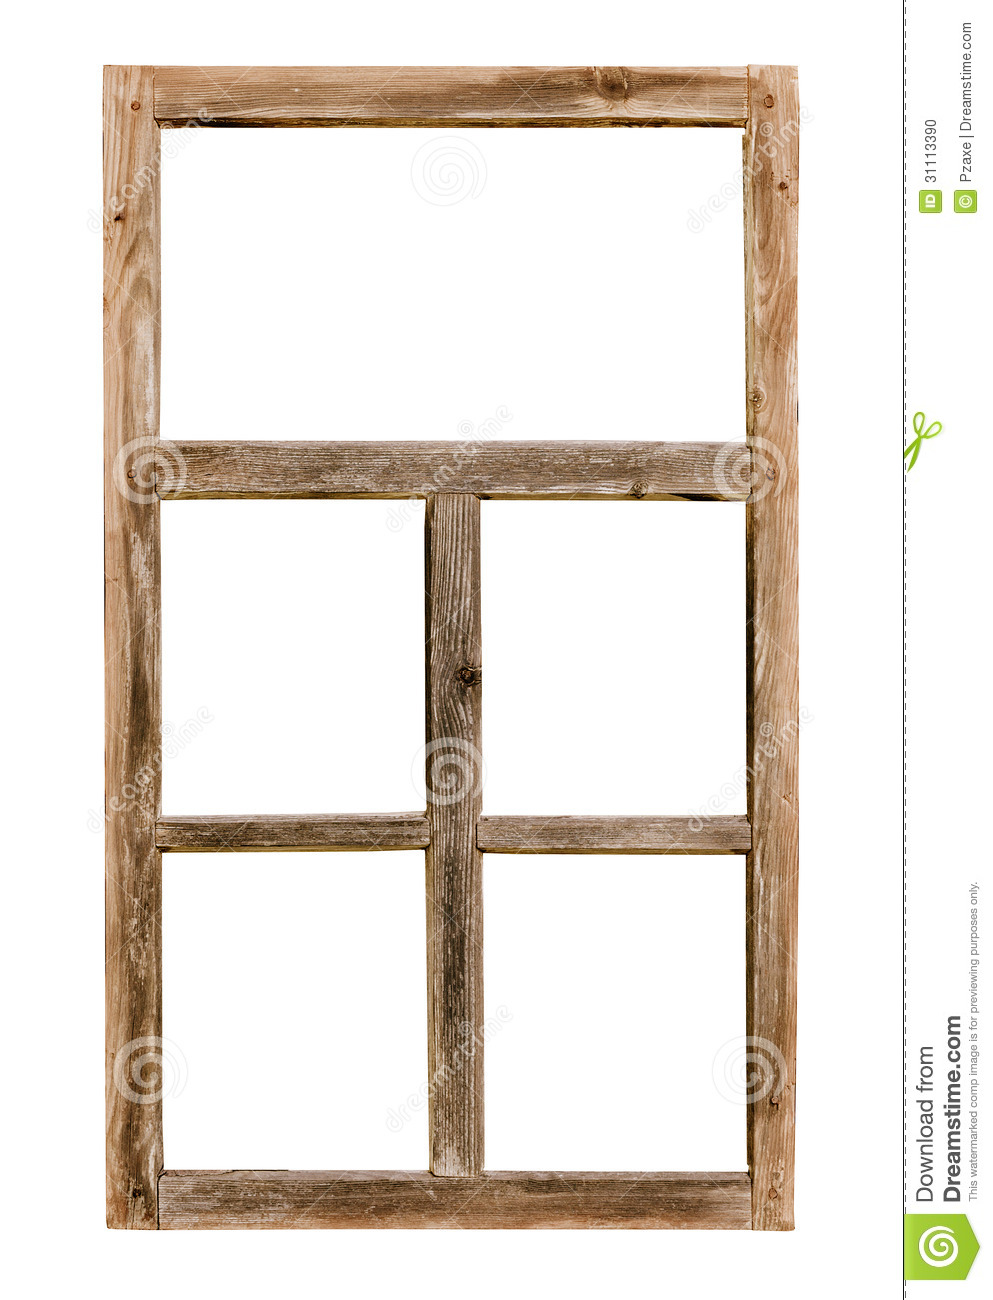 Vintage simple wooden window frame isolated on white stock for Cadre fenetre bois